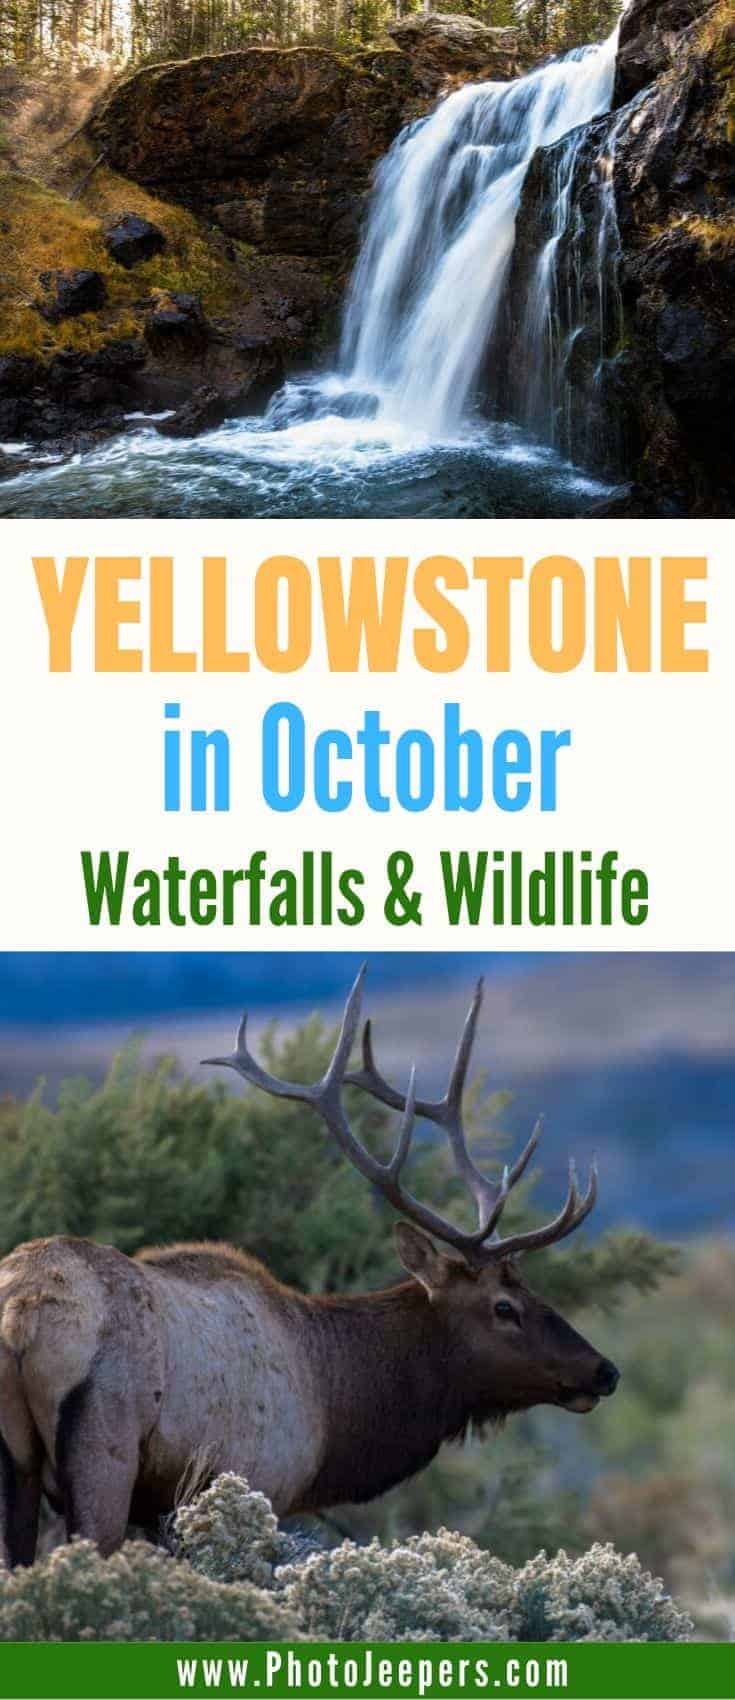 Plan a trip to Yellowstone in October for amazing waterfalls and wildlife.